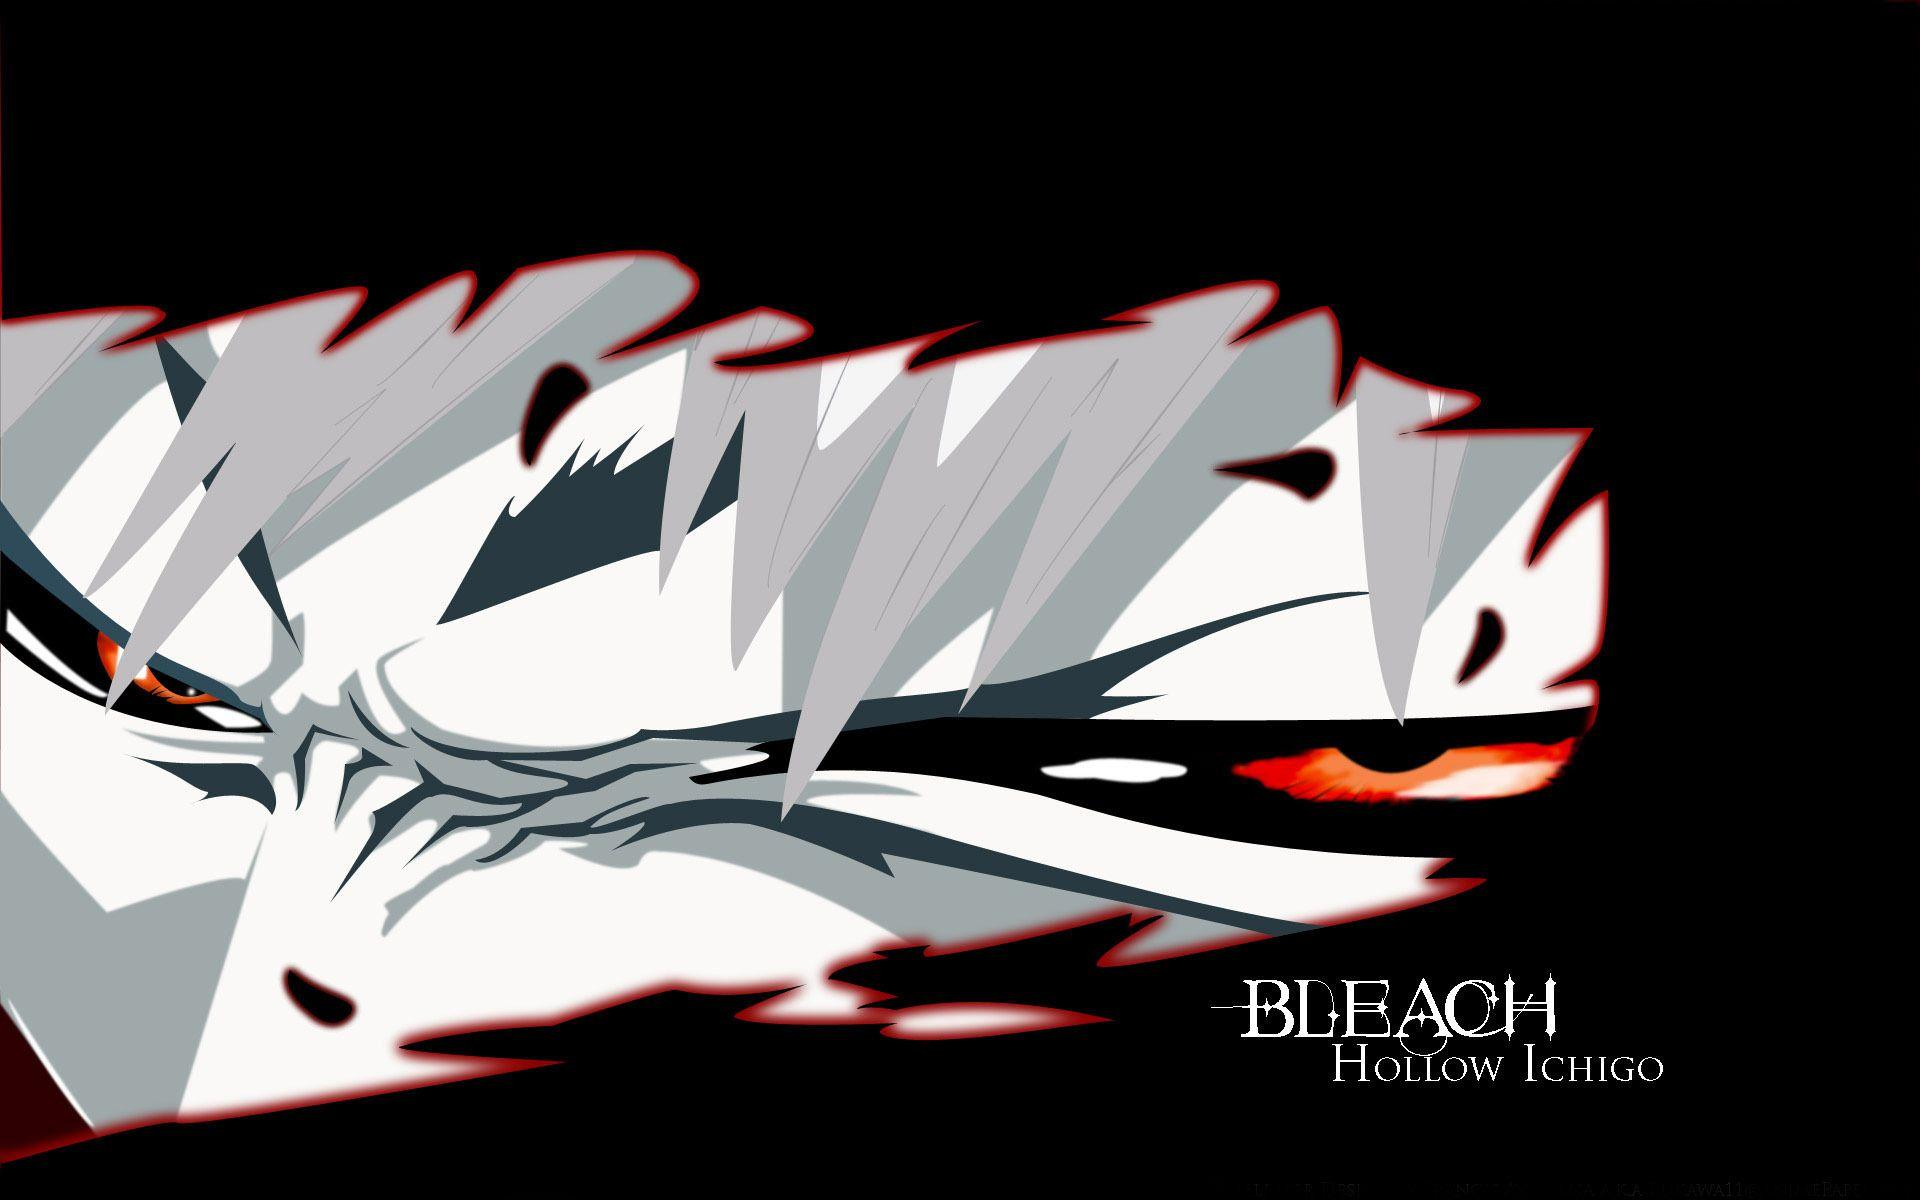 http://wallpapercave.com/wp/HdC7Snh.jpg Ichigo Hollow Wallpaper